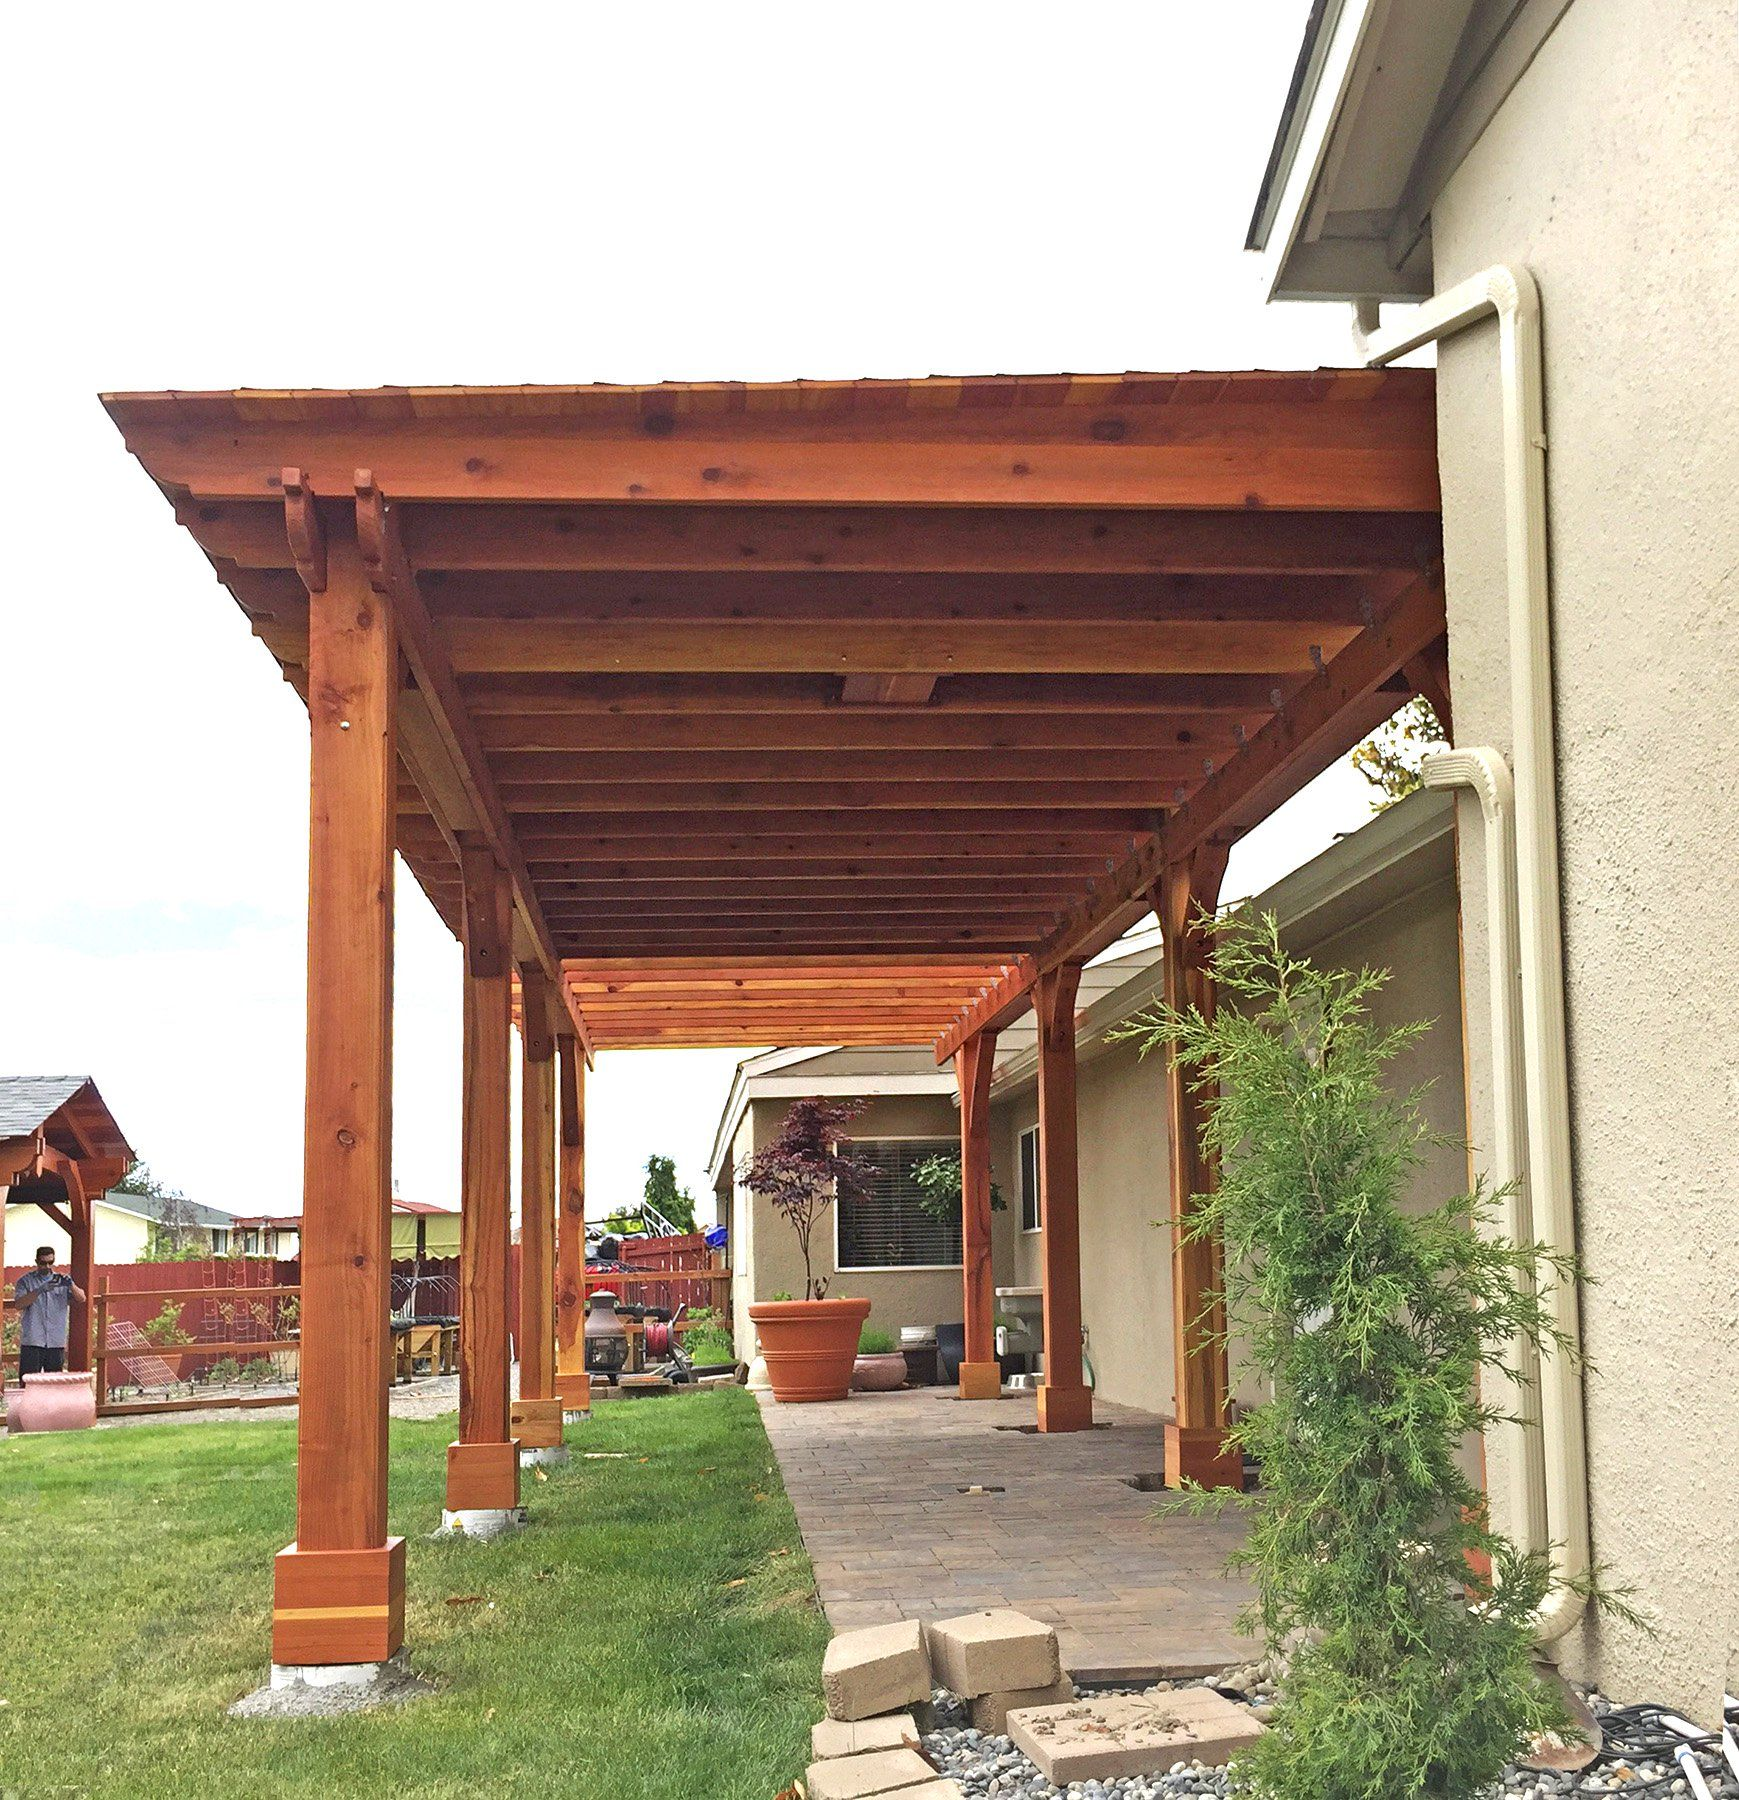 small resolution of custom shed pavilion options 12 x 24 redwood one ceiling fan base electrical wiring trim kit for 1 post gale wind anchors for 8 posts